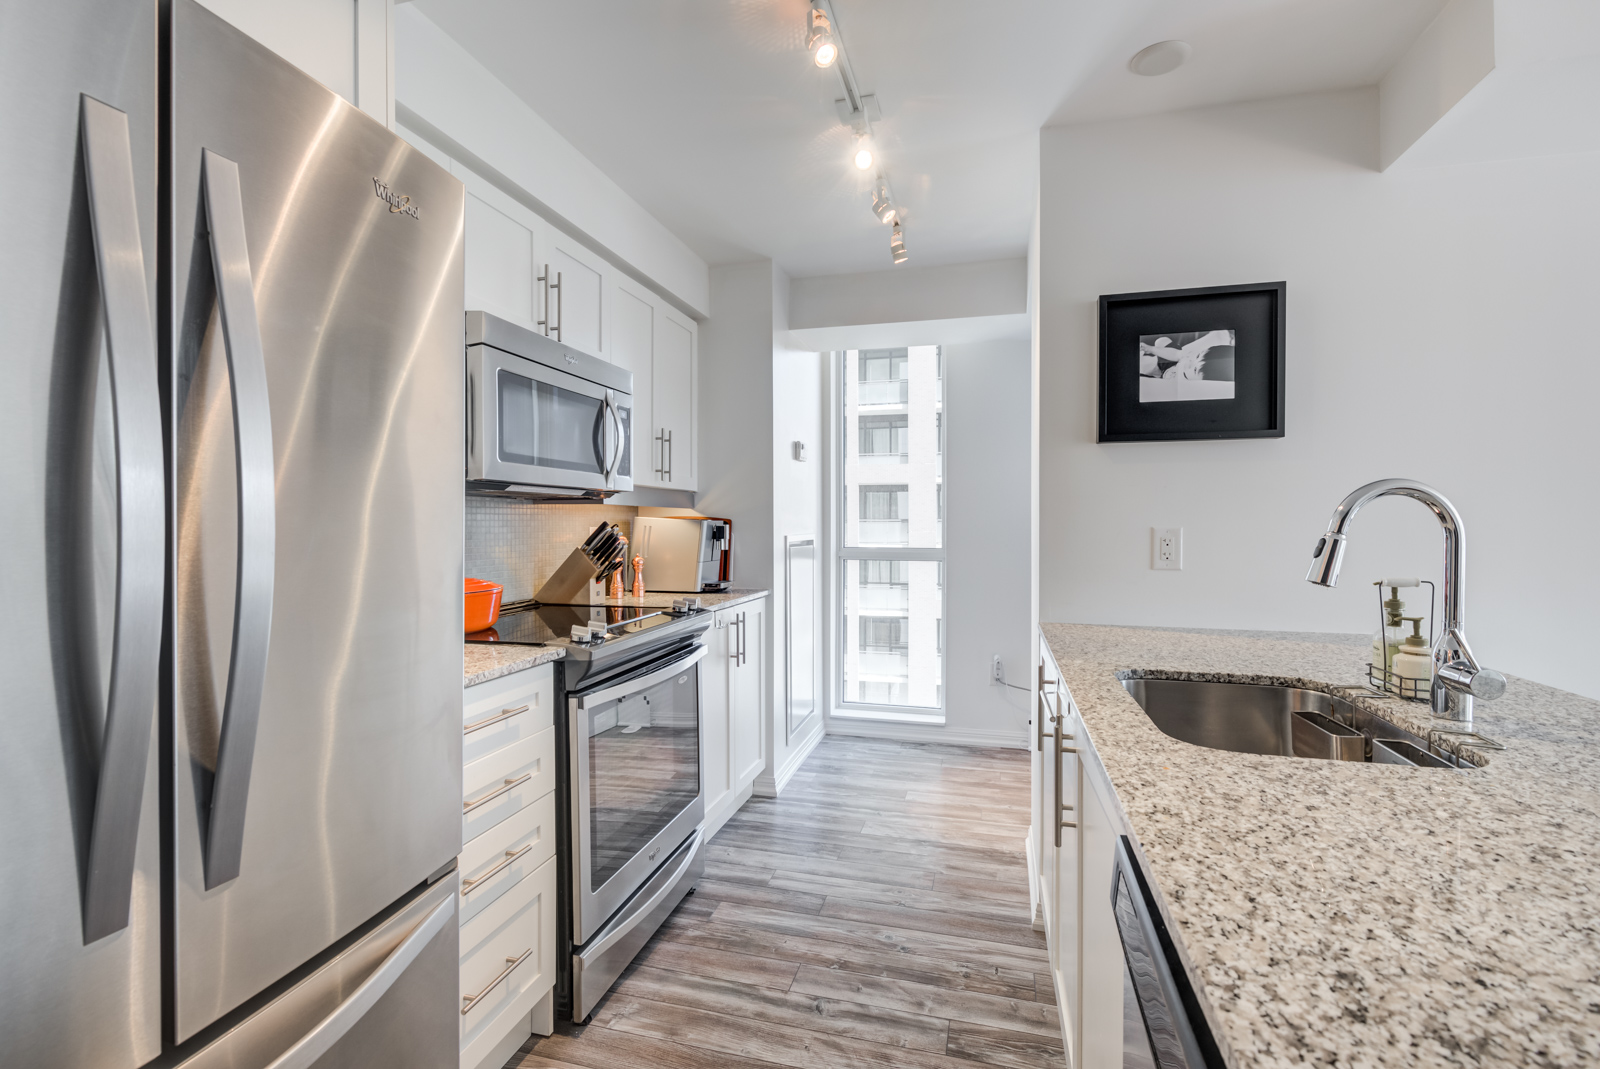 Kitchen and window view of 400 Adelaide St E Unit 704 condos in Moss Park.